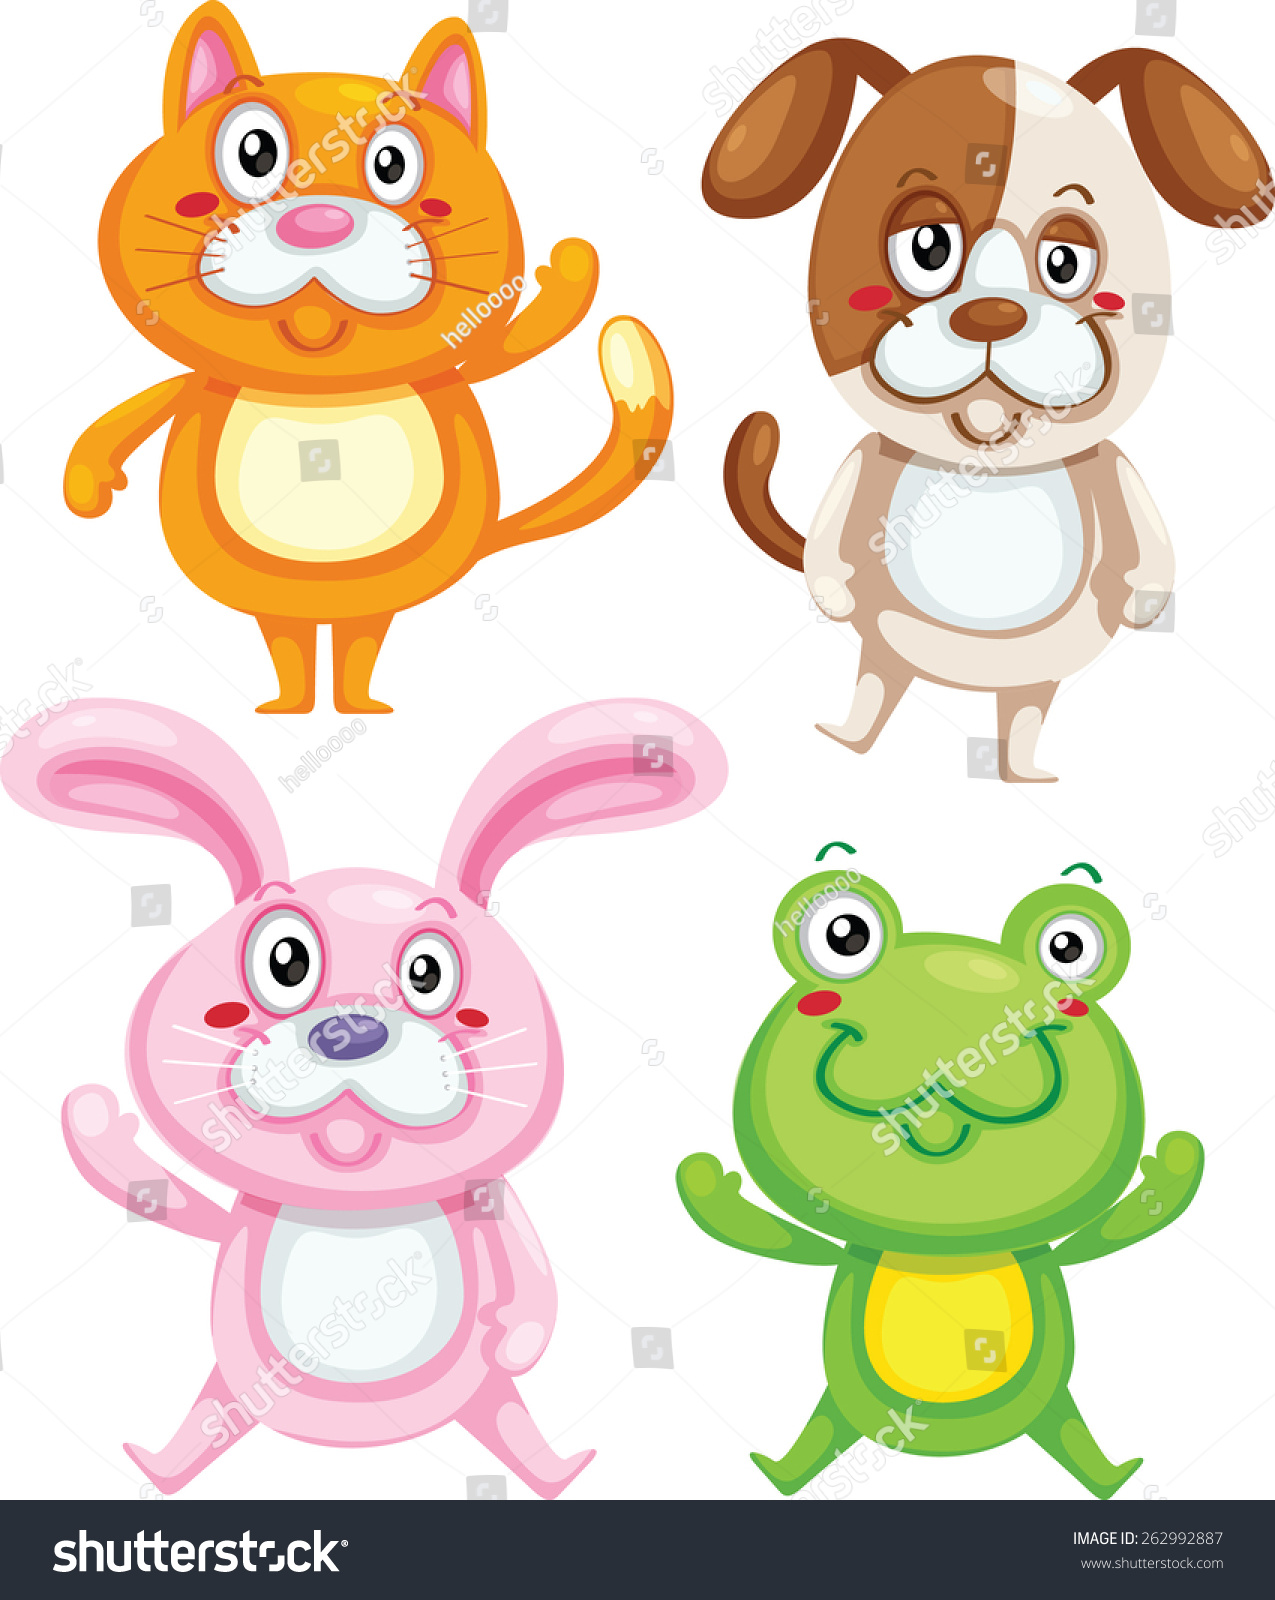 online image   photo editor shutterstock editor frog clip art to print frog clip art frogs